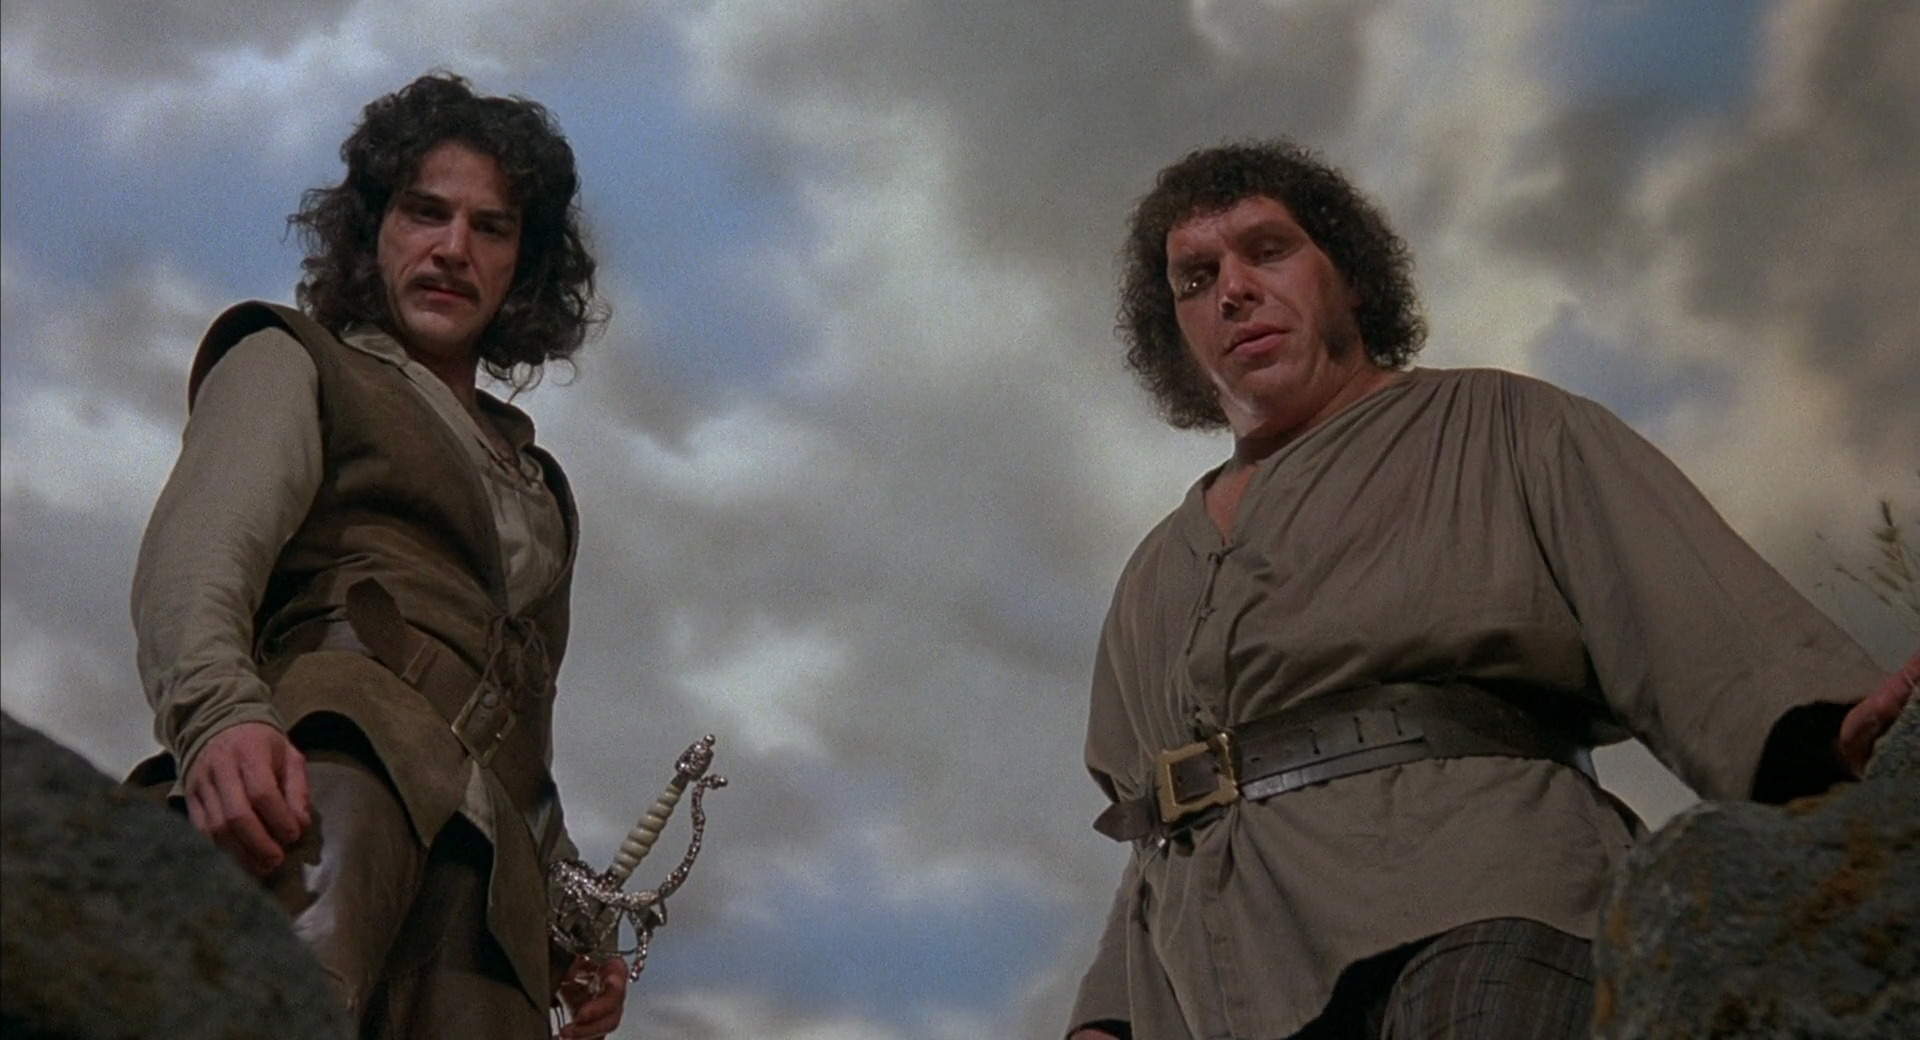 (l to r) Inigo Montoya (Mandy Patinkin) and Fezzik (Andre the Giant) in The Princess Bride (1987)